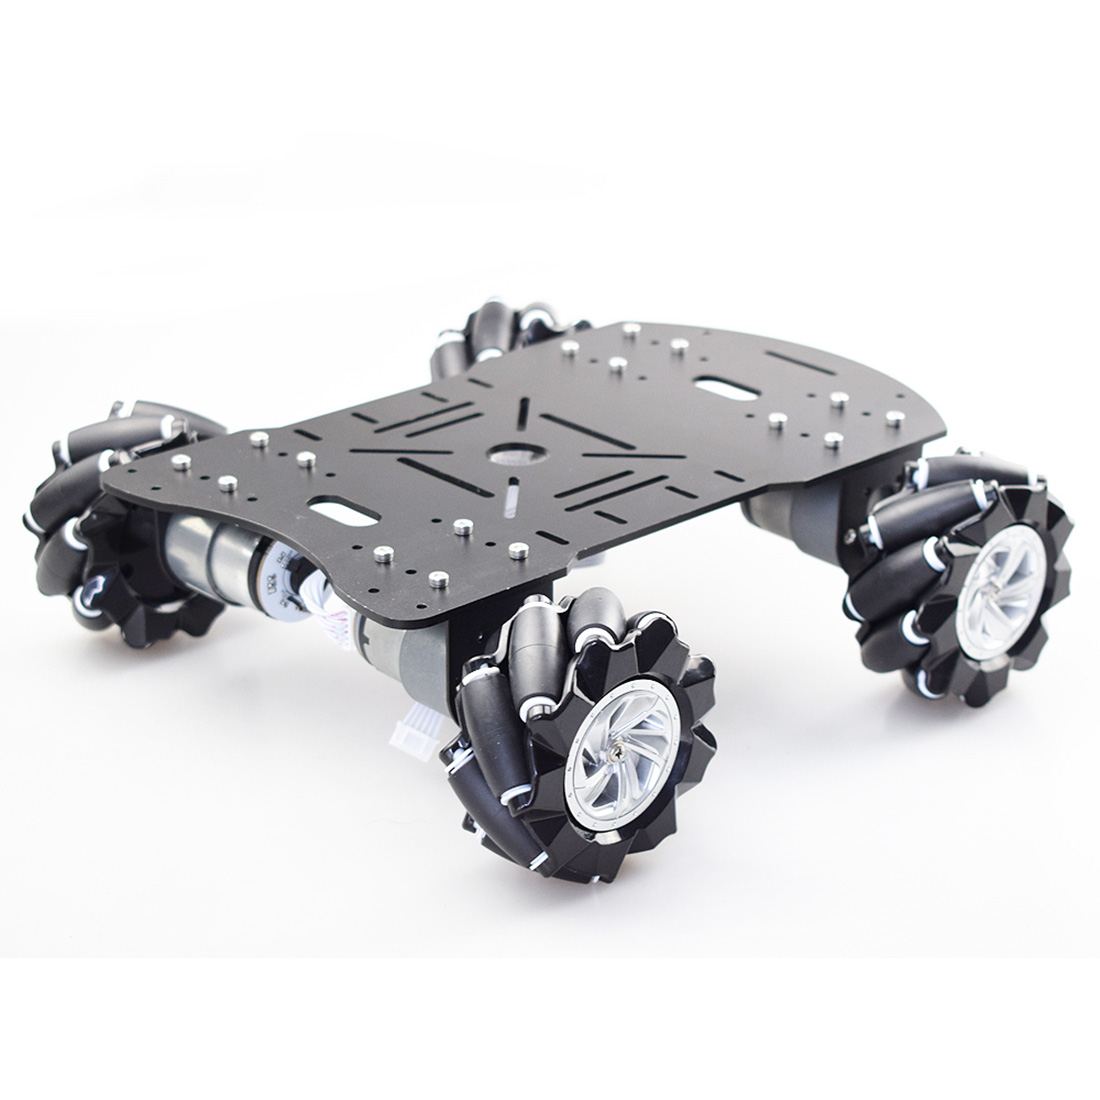 New 80mm Mecanum Acrylic Platform Kit DIY Omni-Directional Mecanum Wheel Robot Car Without Electronic Control - Black